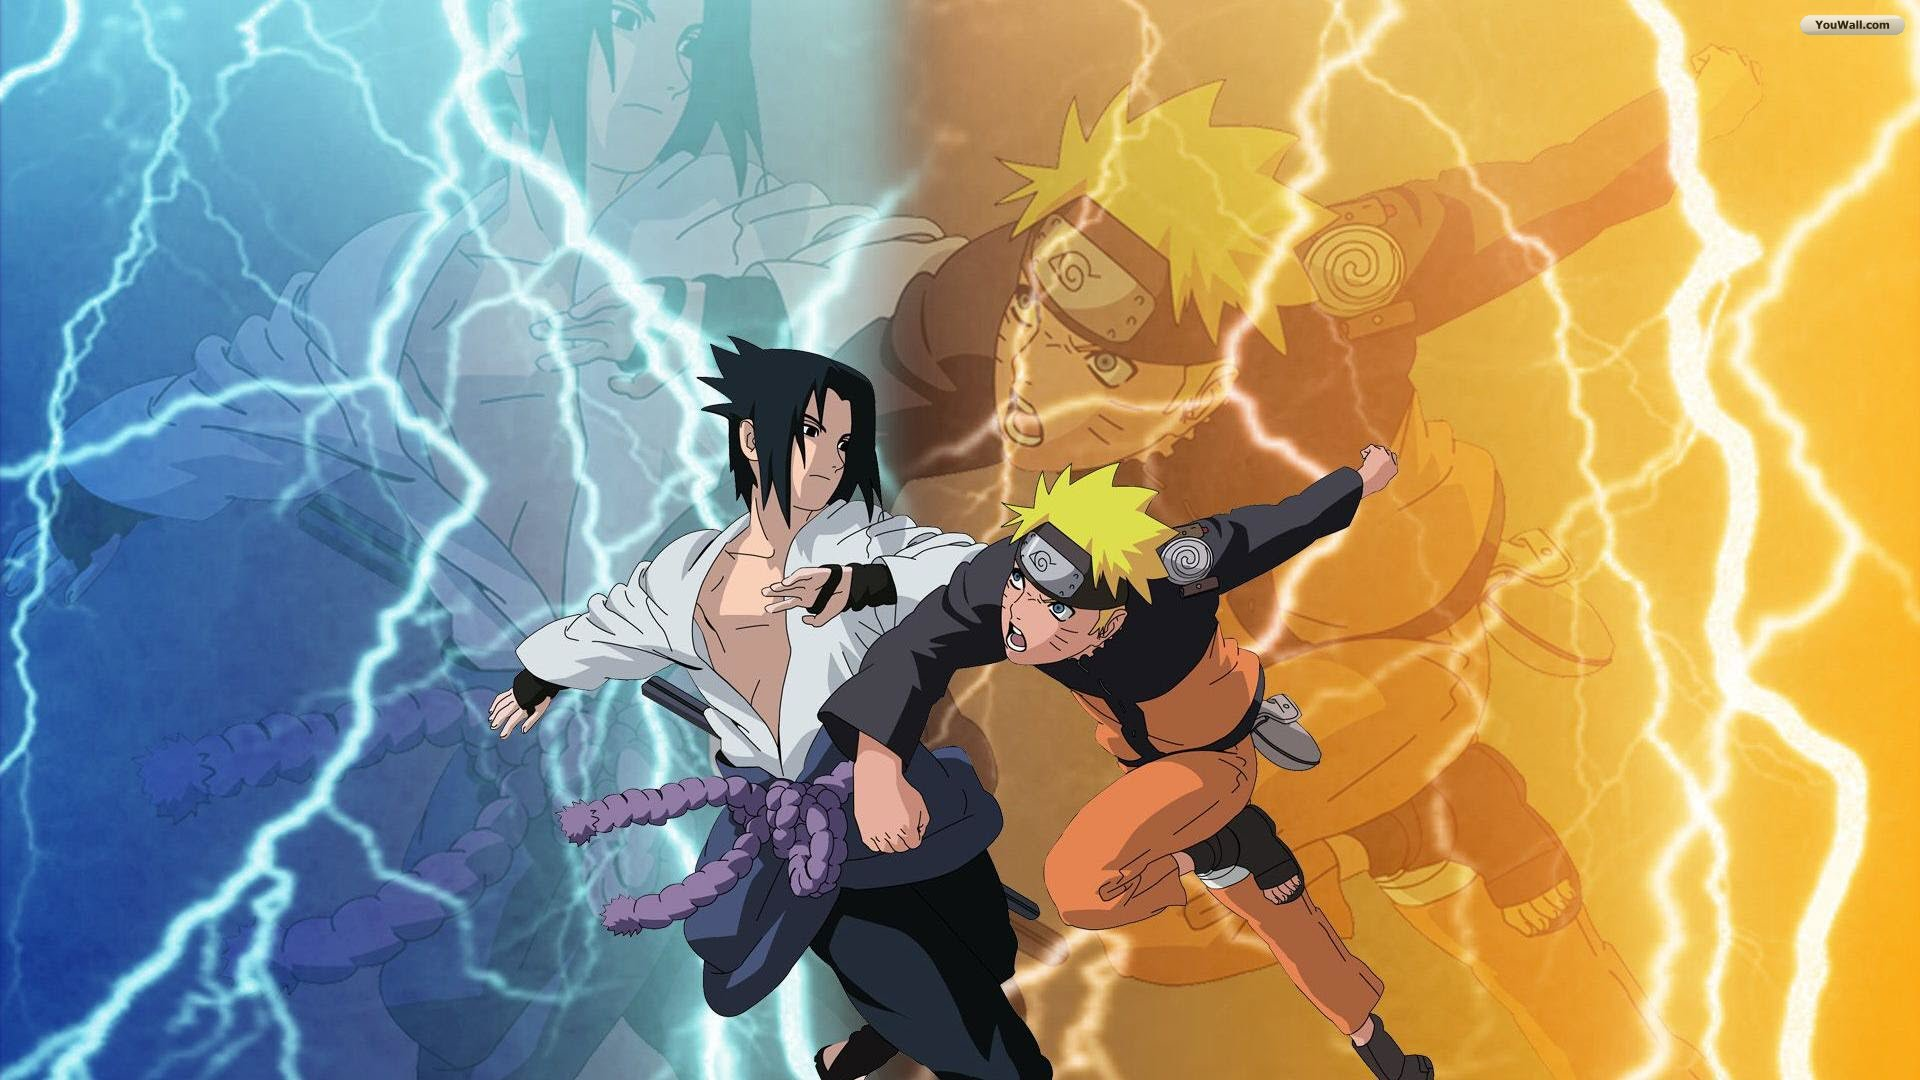 44+ Naruto Vs Sasuke Wallpaper HD, Naruto Vs Sasuke HD Full HD